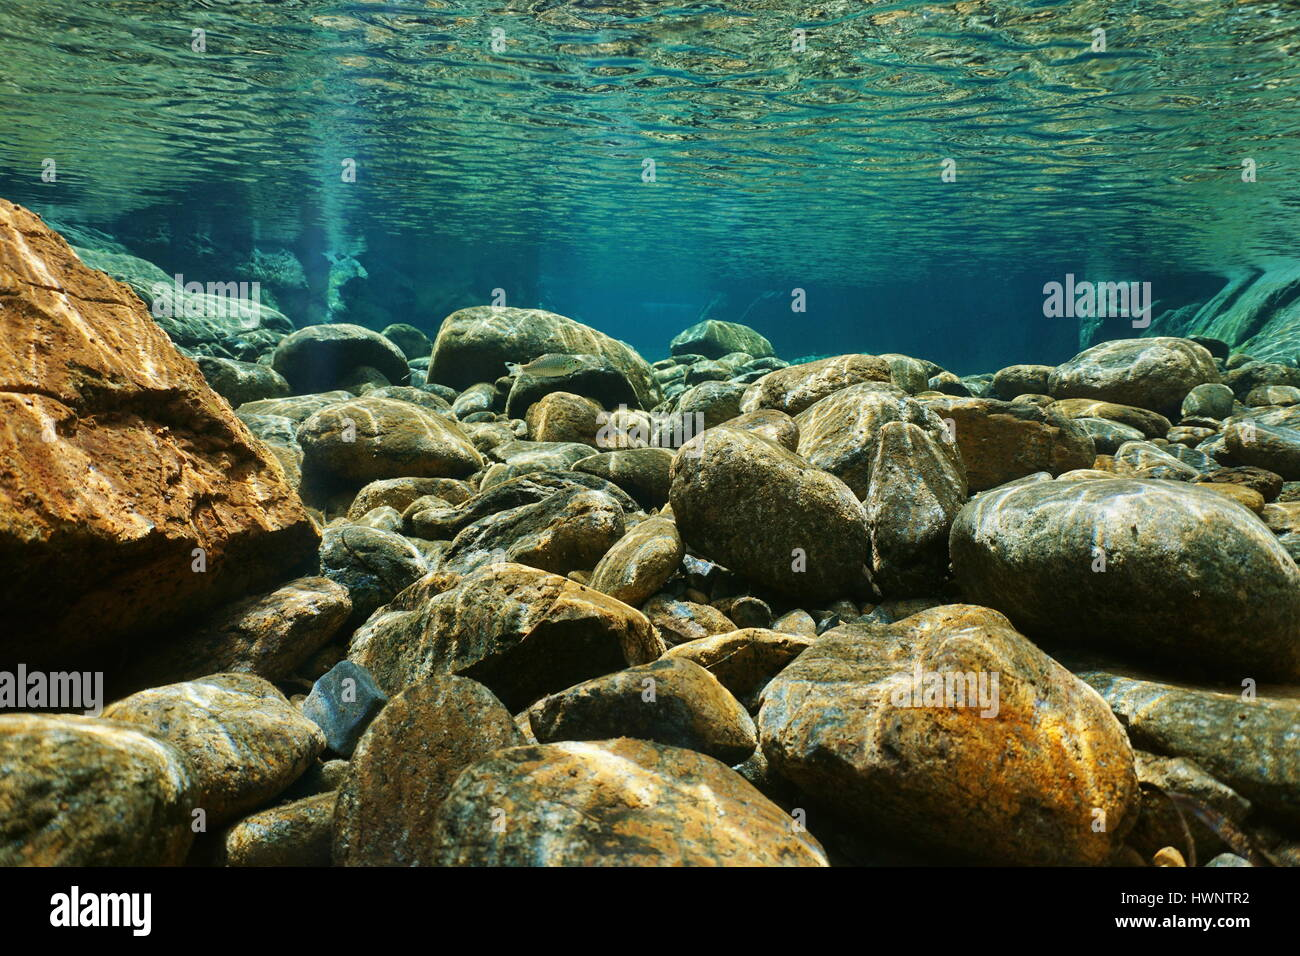 River underwater rocks on a shallow riverbed with clear water, Dumbea, Grande Terre island, New Caledonia - Stock Image